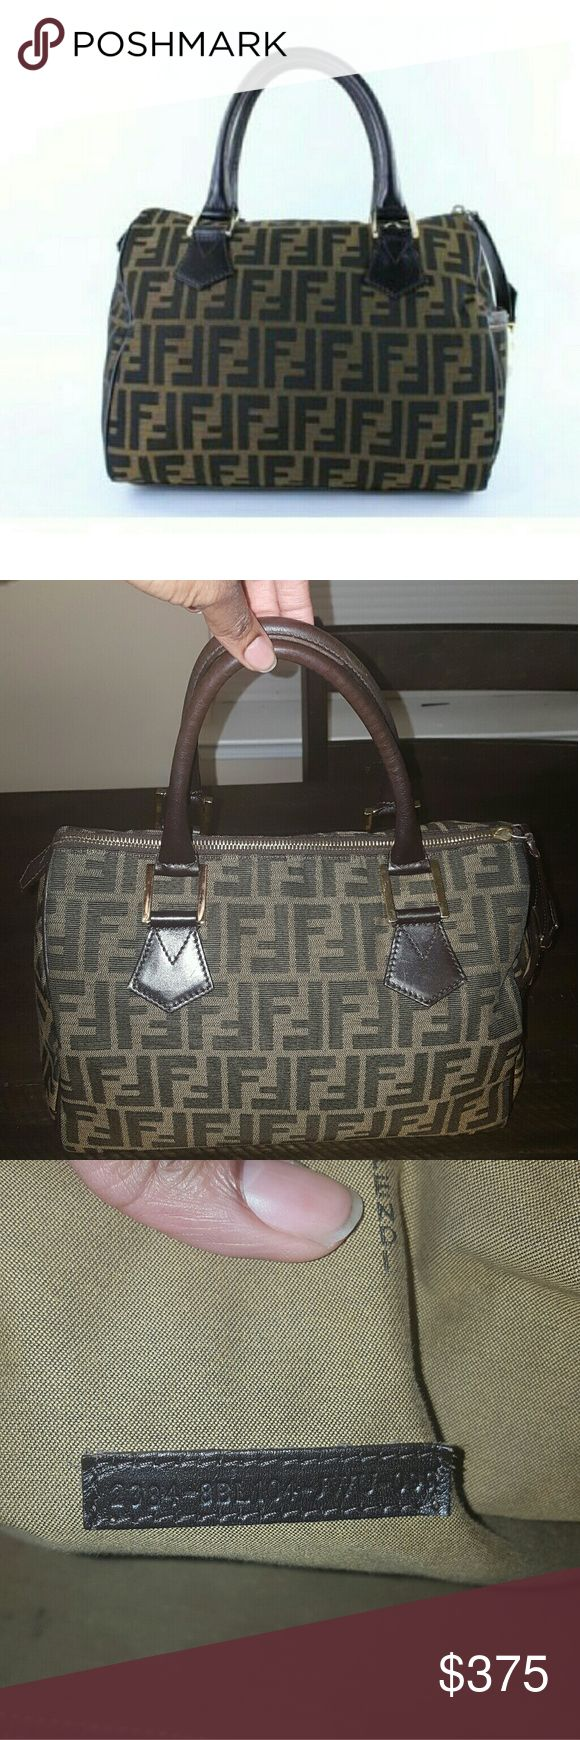 Fendi Bag Brown Monogram Zucca Canvas Medium Chef  Boston Satchel. Gently used with normal wear and tear. There is a stain in the bottom as shown in the picture. This item is a jewel! Great condition and authentic  (serial number provided in photo). If you surf the internet  to price compare you will see that I have already priced this item to sell but as always I am open to reasonable offers. Make your offer now. This won't last!!!! Fendi Bags Satchels